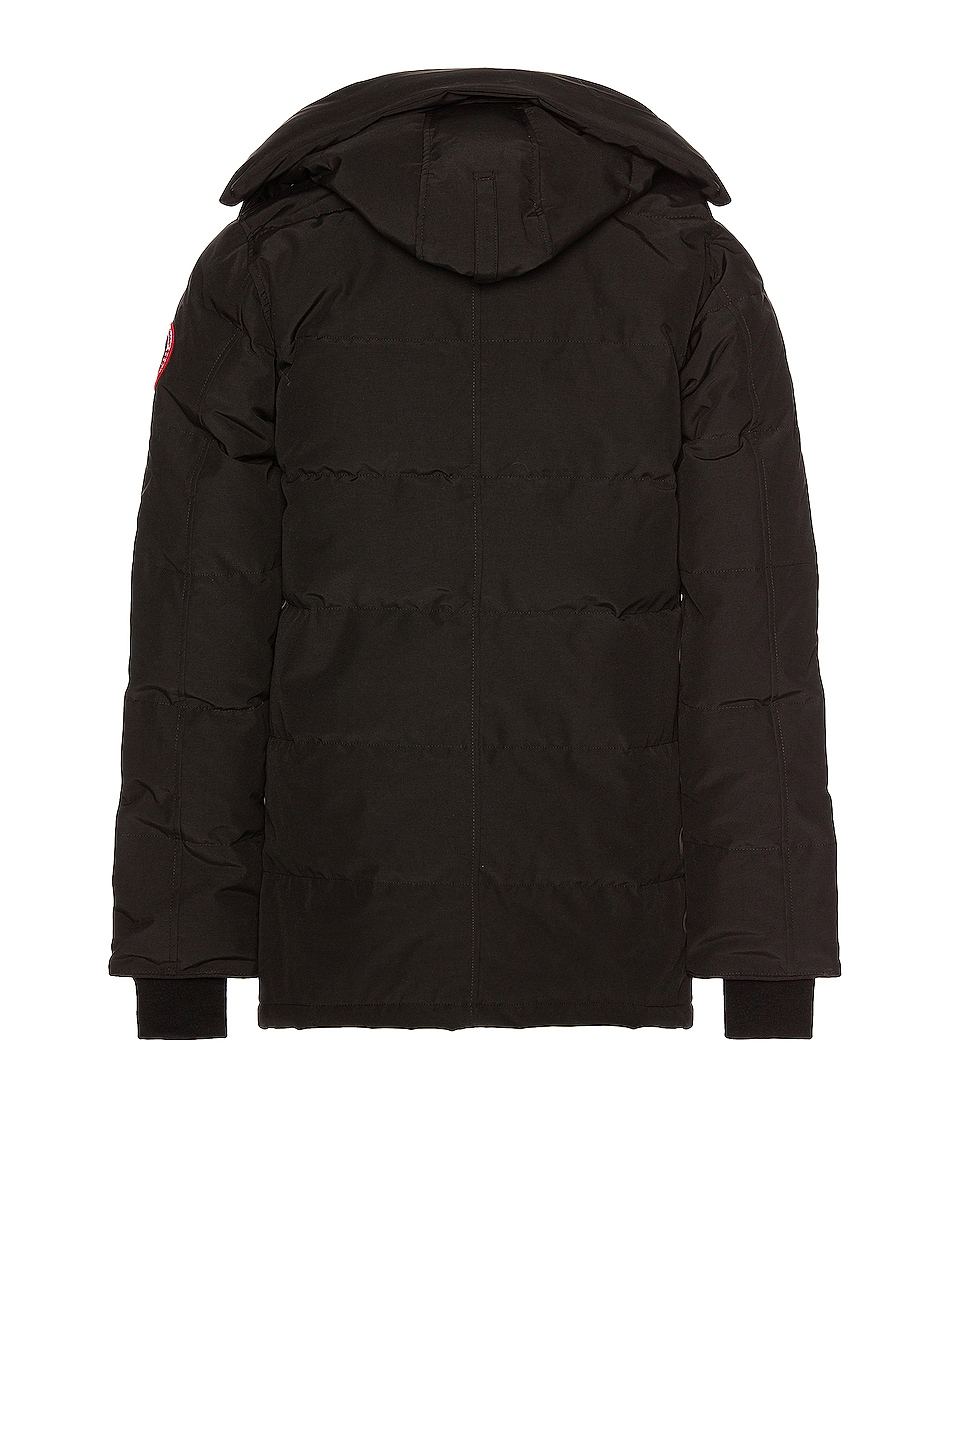 Image 2 of Canada Goose Carson Parka in Black